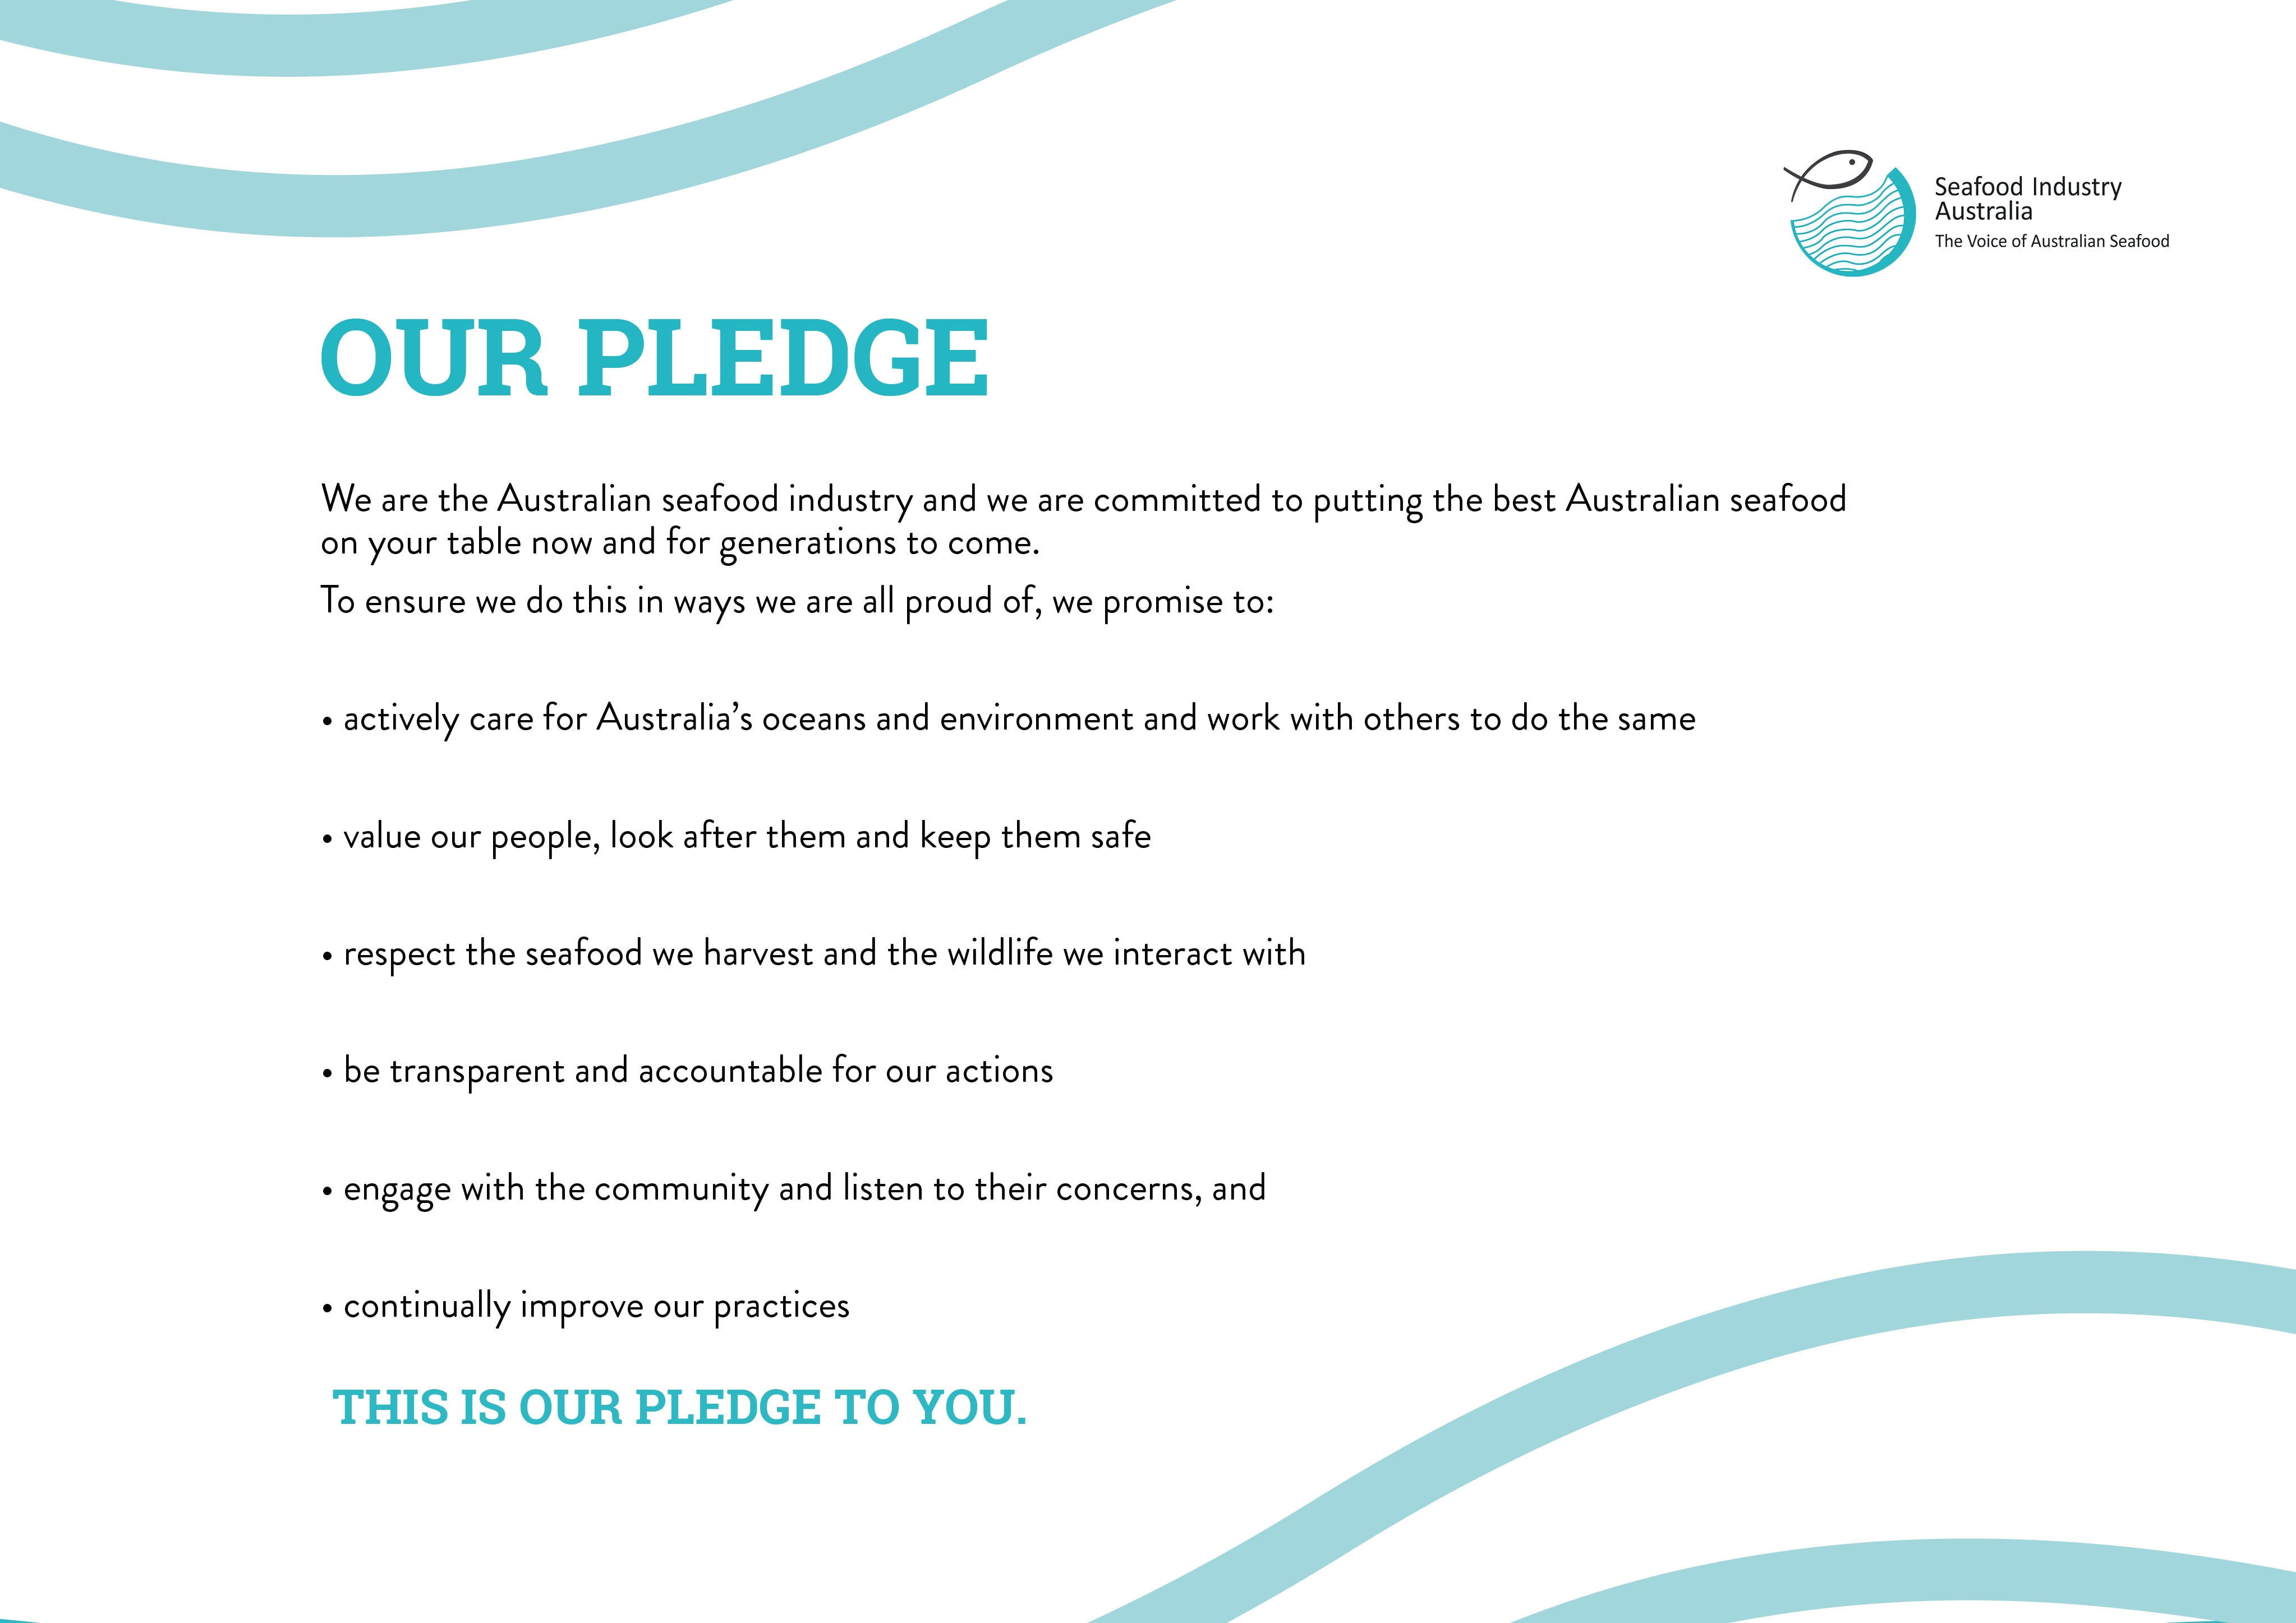 Our pledge: Australian seafood industry response to community values and expectations